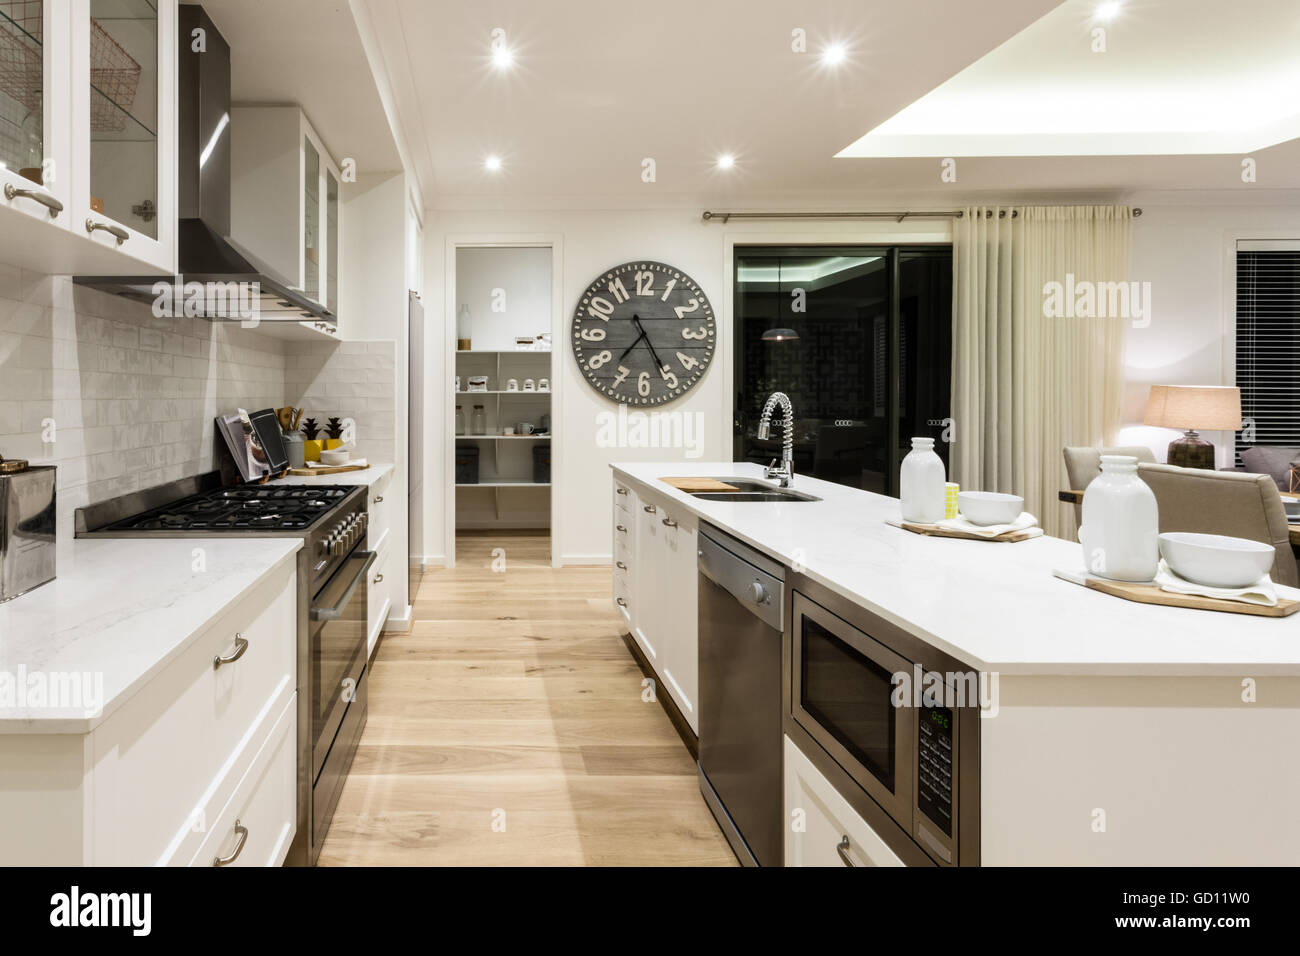 Luxury kitchen through the hallway to a another room between stoves, oven, counter top and cupboards beside a big - Stock Image